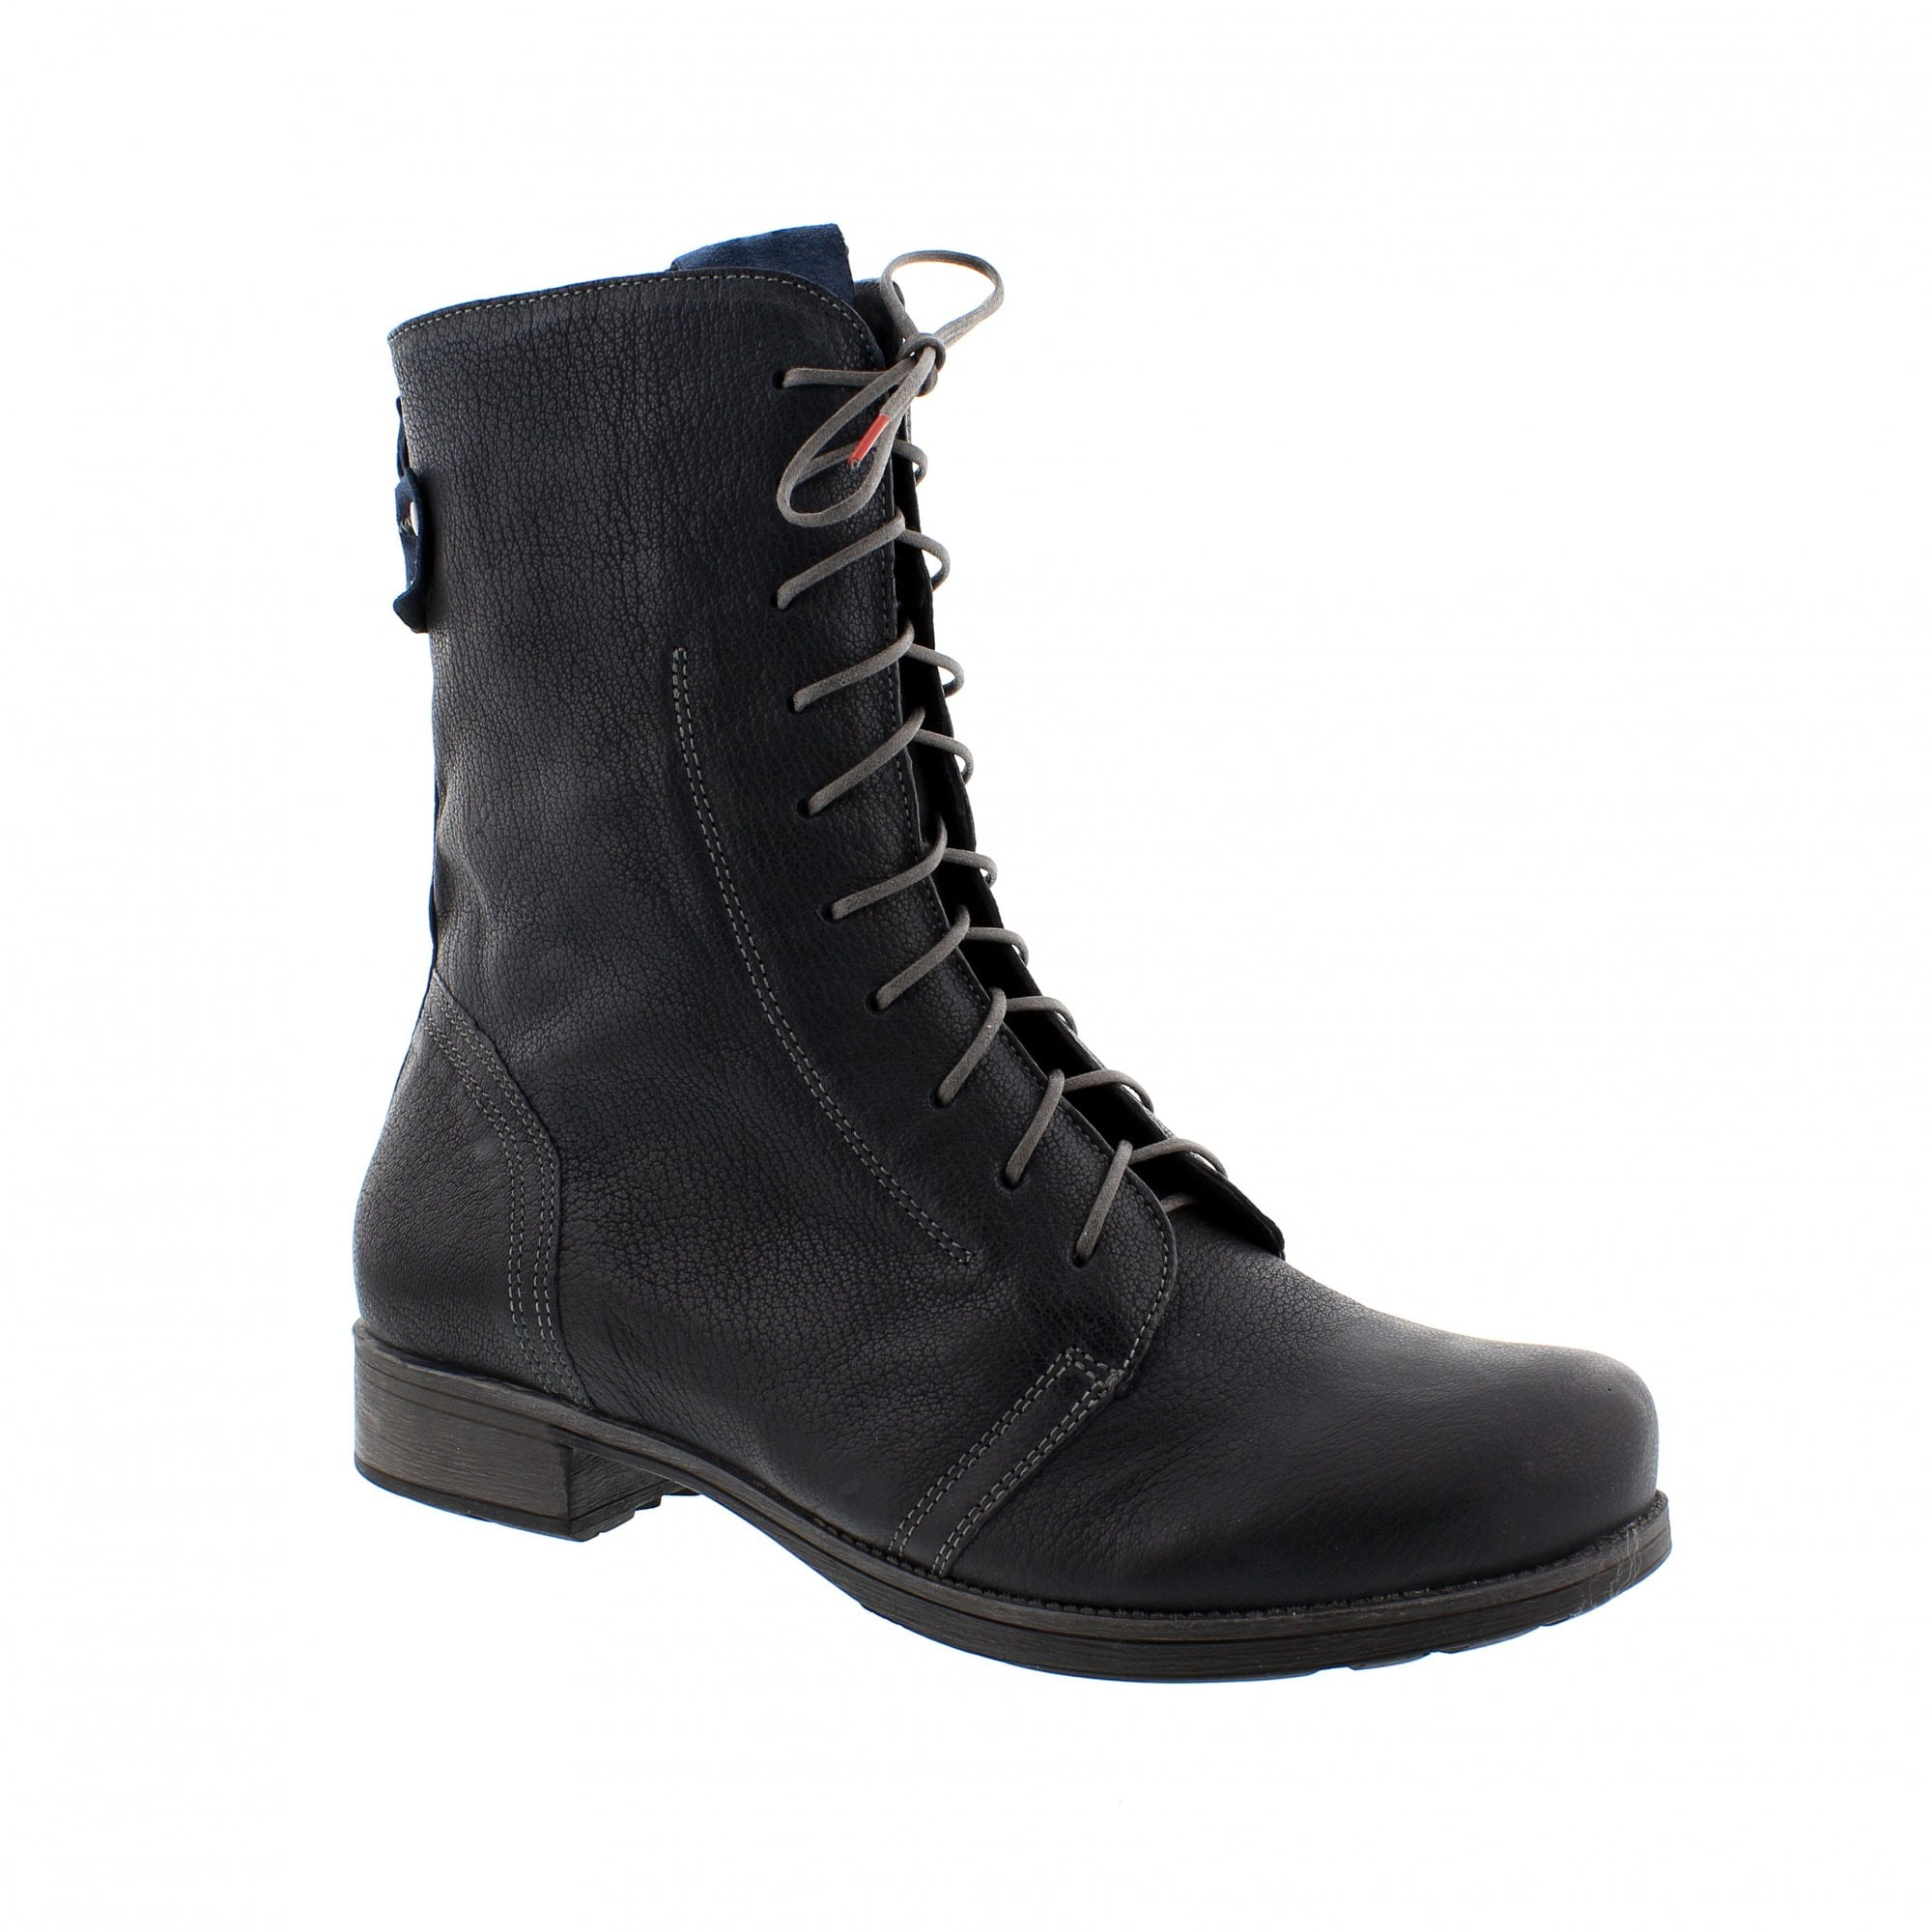 17d17e0ae30e4a Think! Denk 81024-86 Womens Ankle Boots